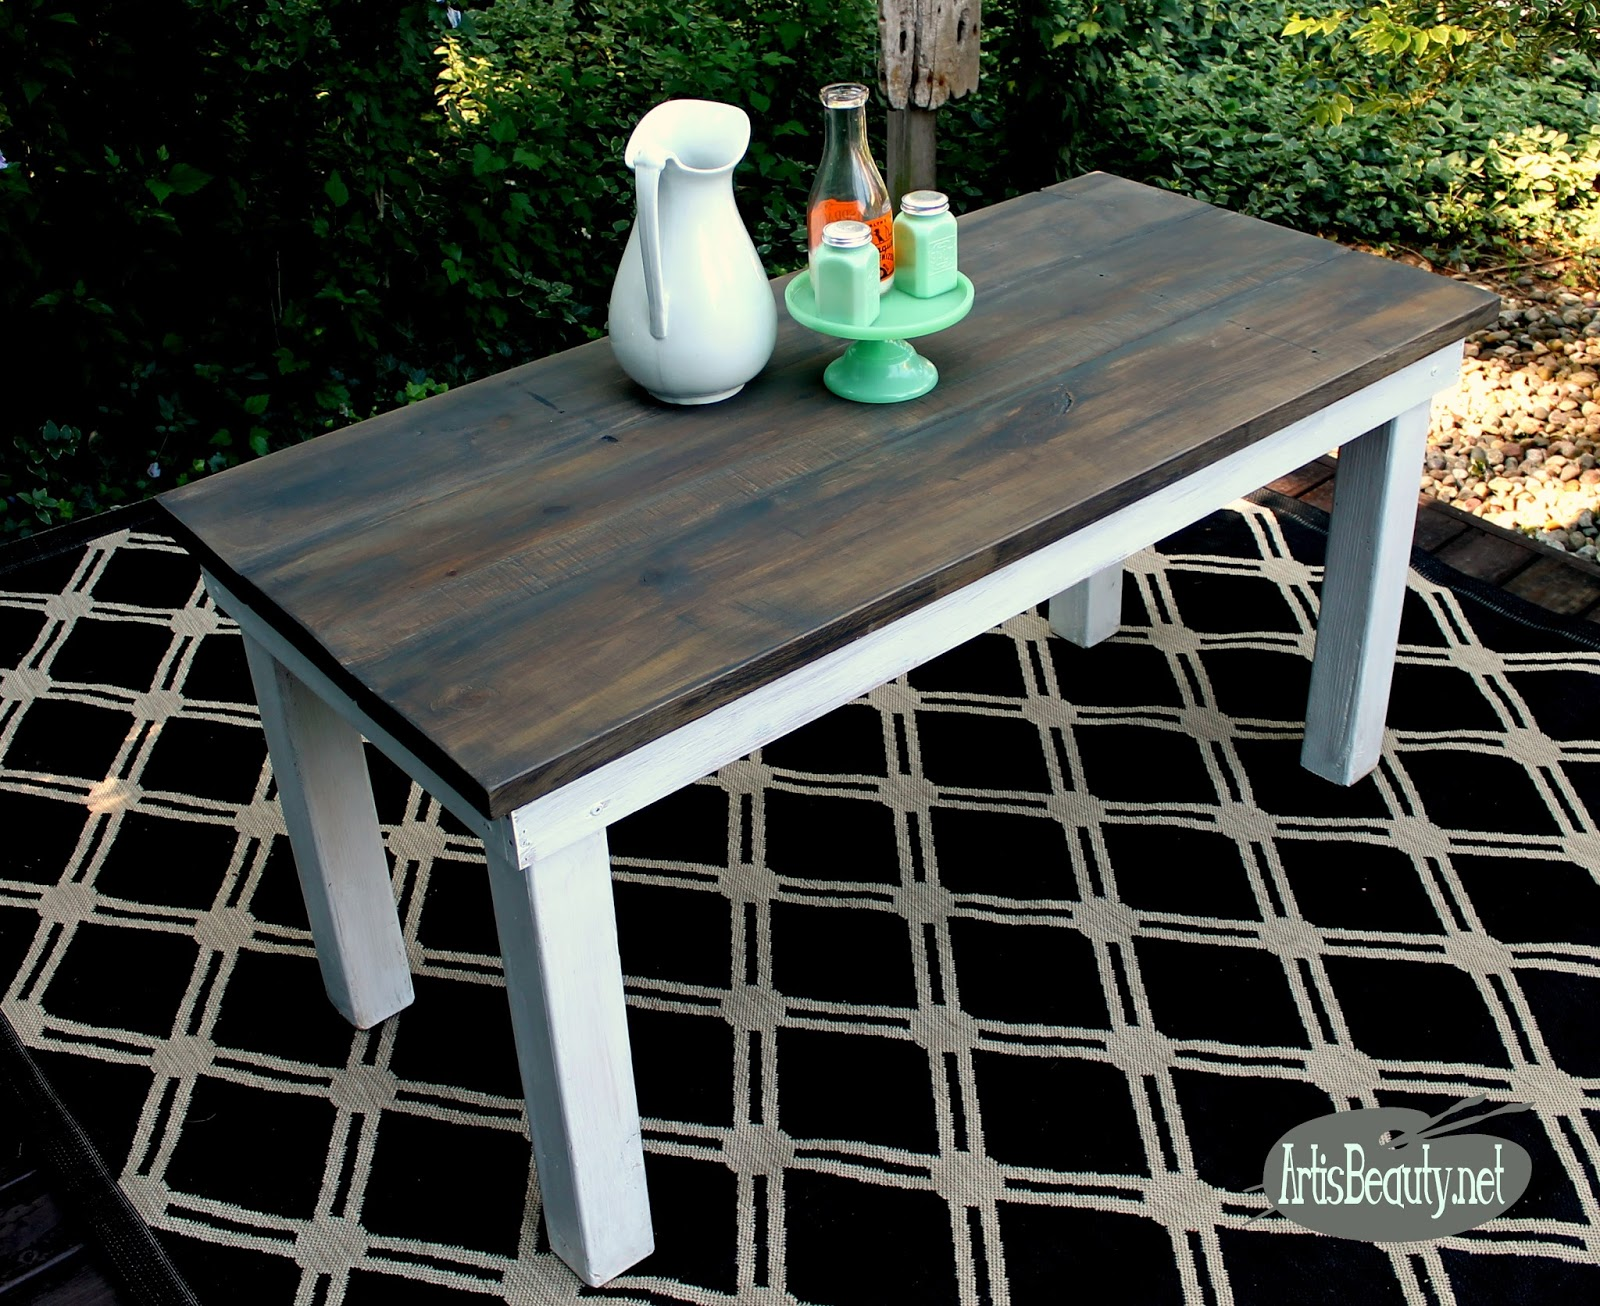 ART IS BEAUTY How I built a Vintage Rustic Farmhouse table for FREE